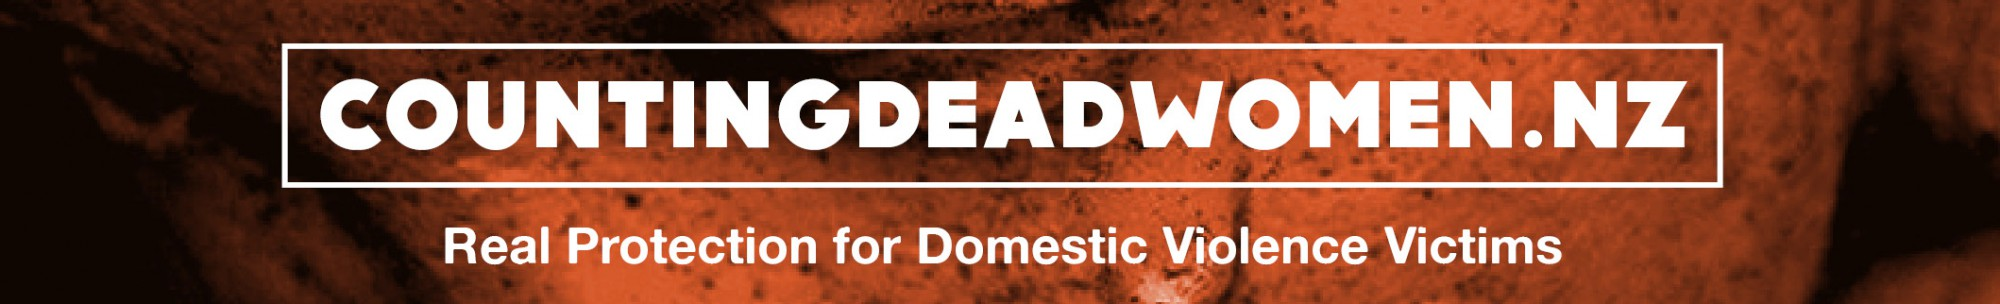 COUNTING DEAD WOMEN . NZ – Real Protection for Domestic Violence Victims